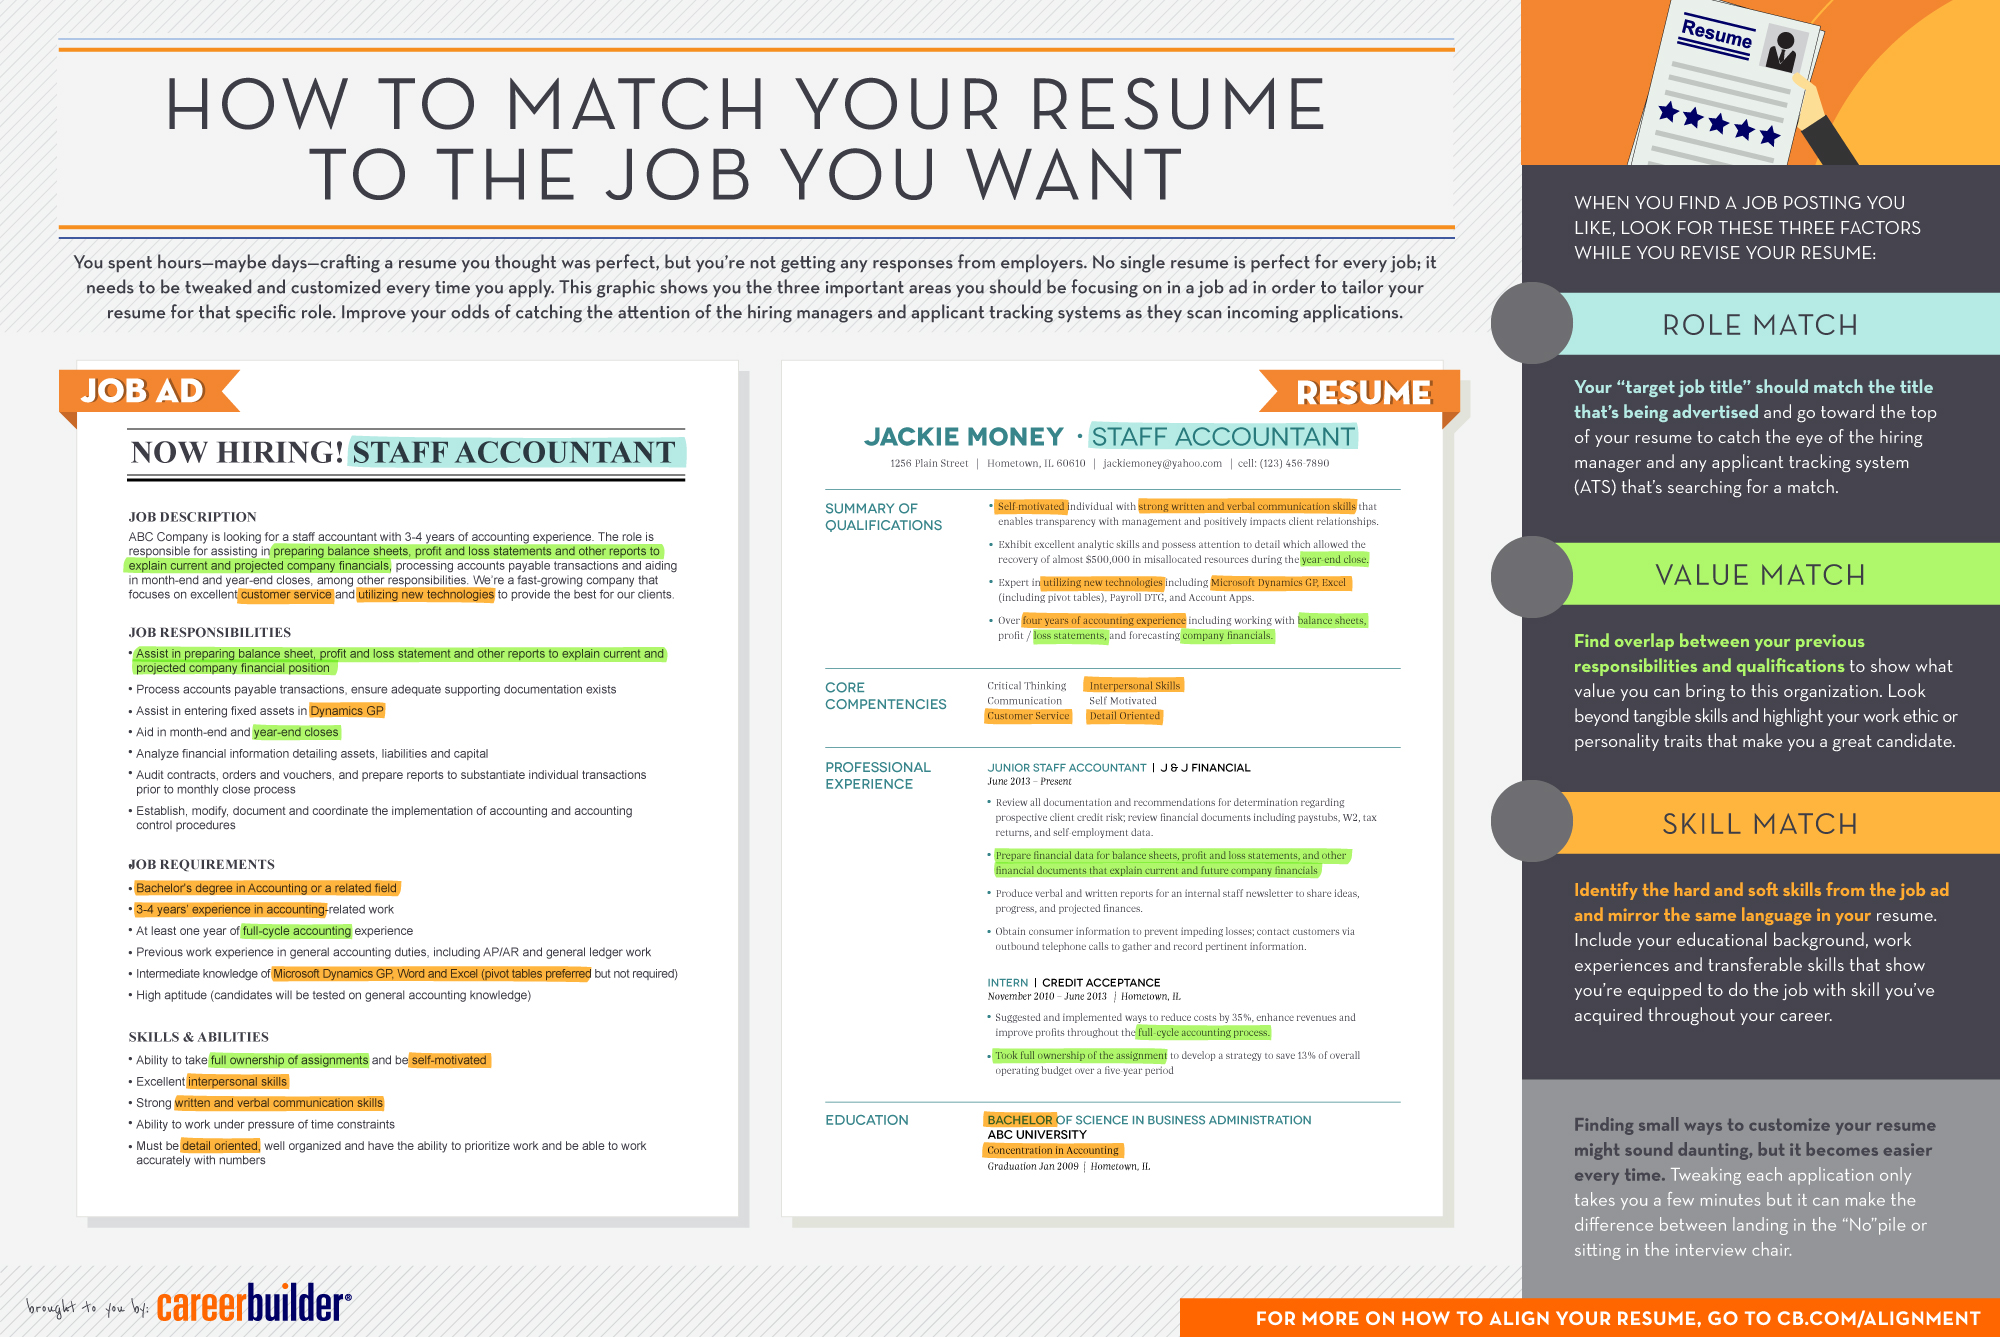 how to tailor your resume to a job description  u2013 inta advising blog